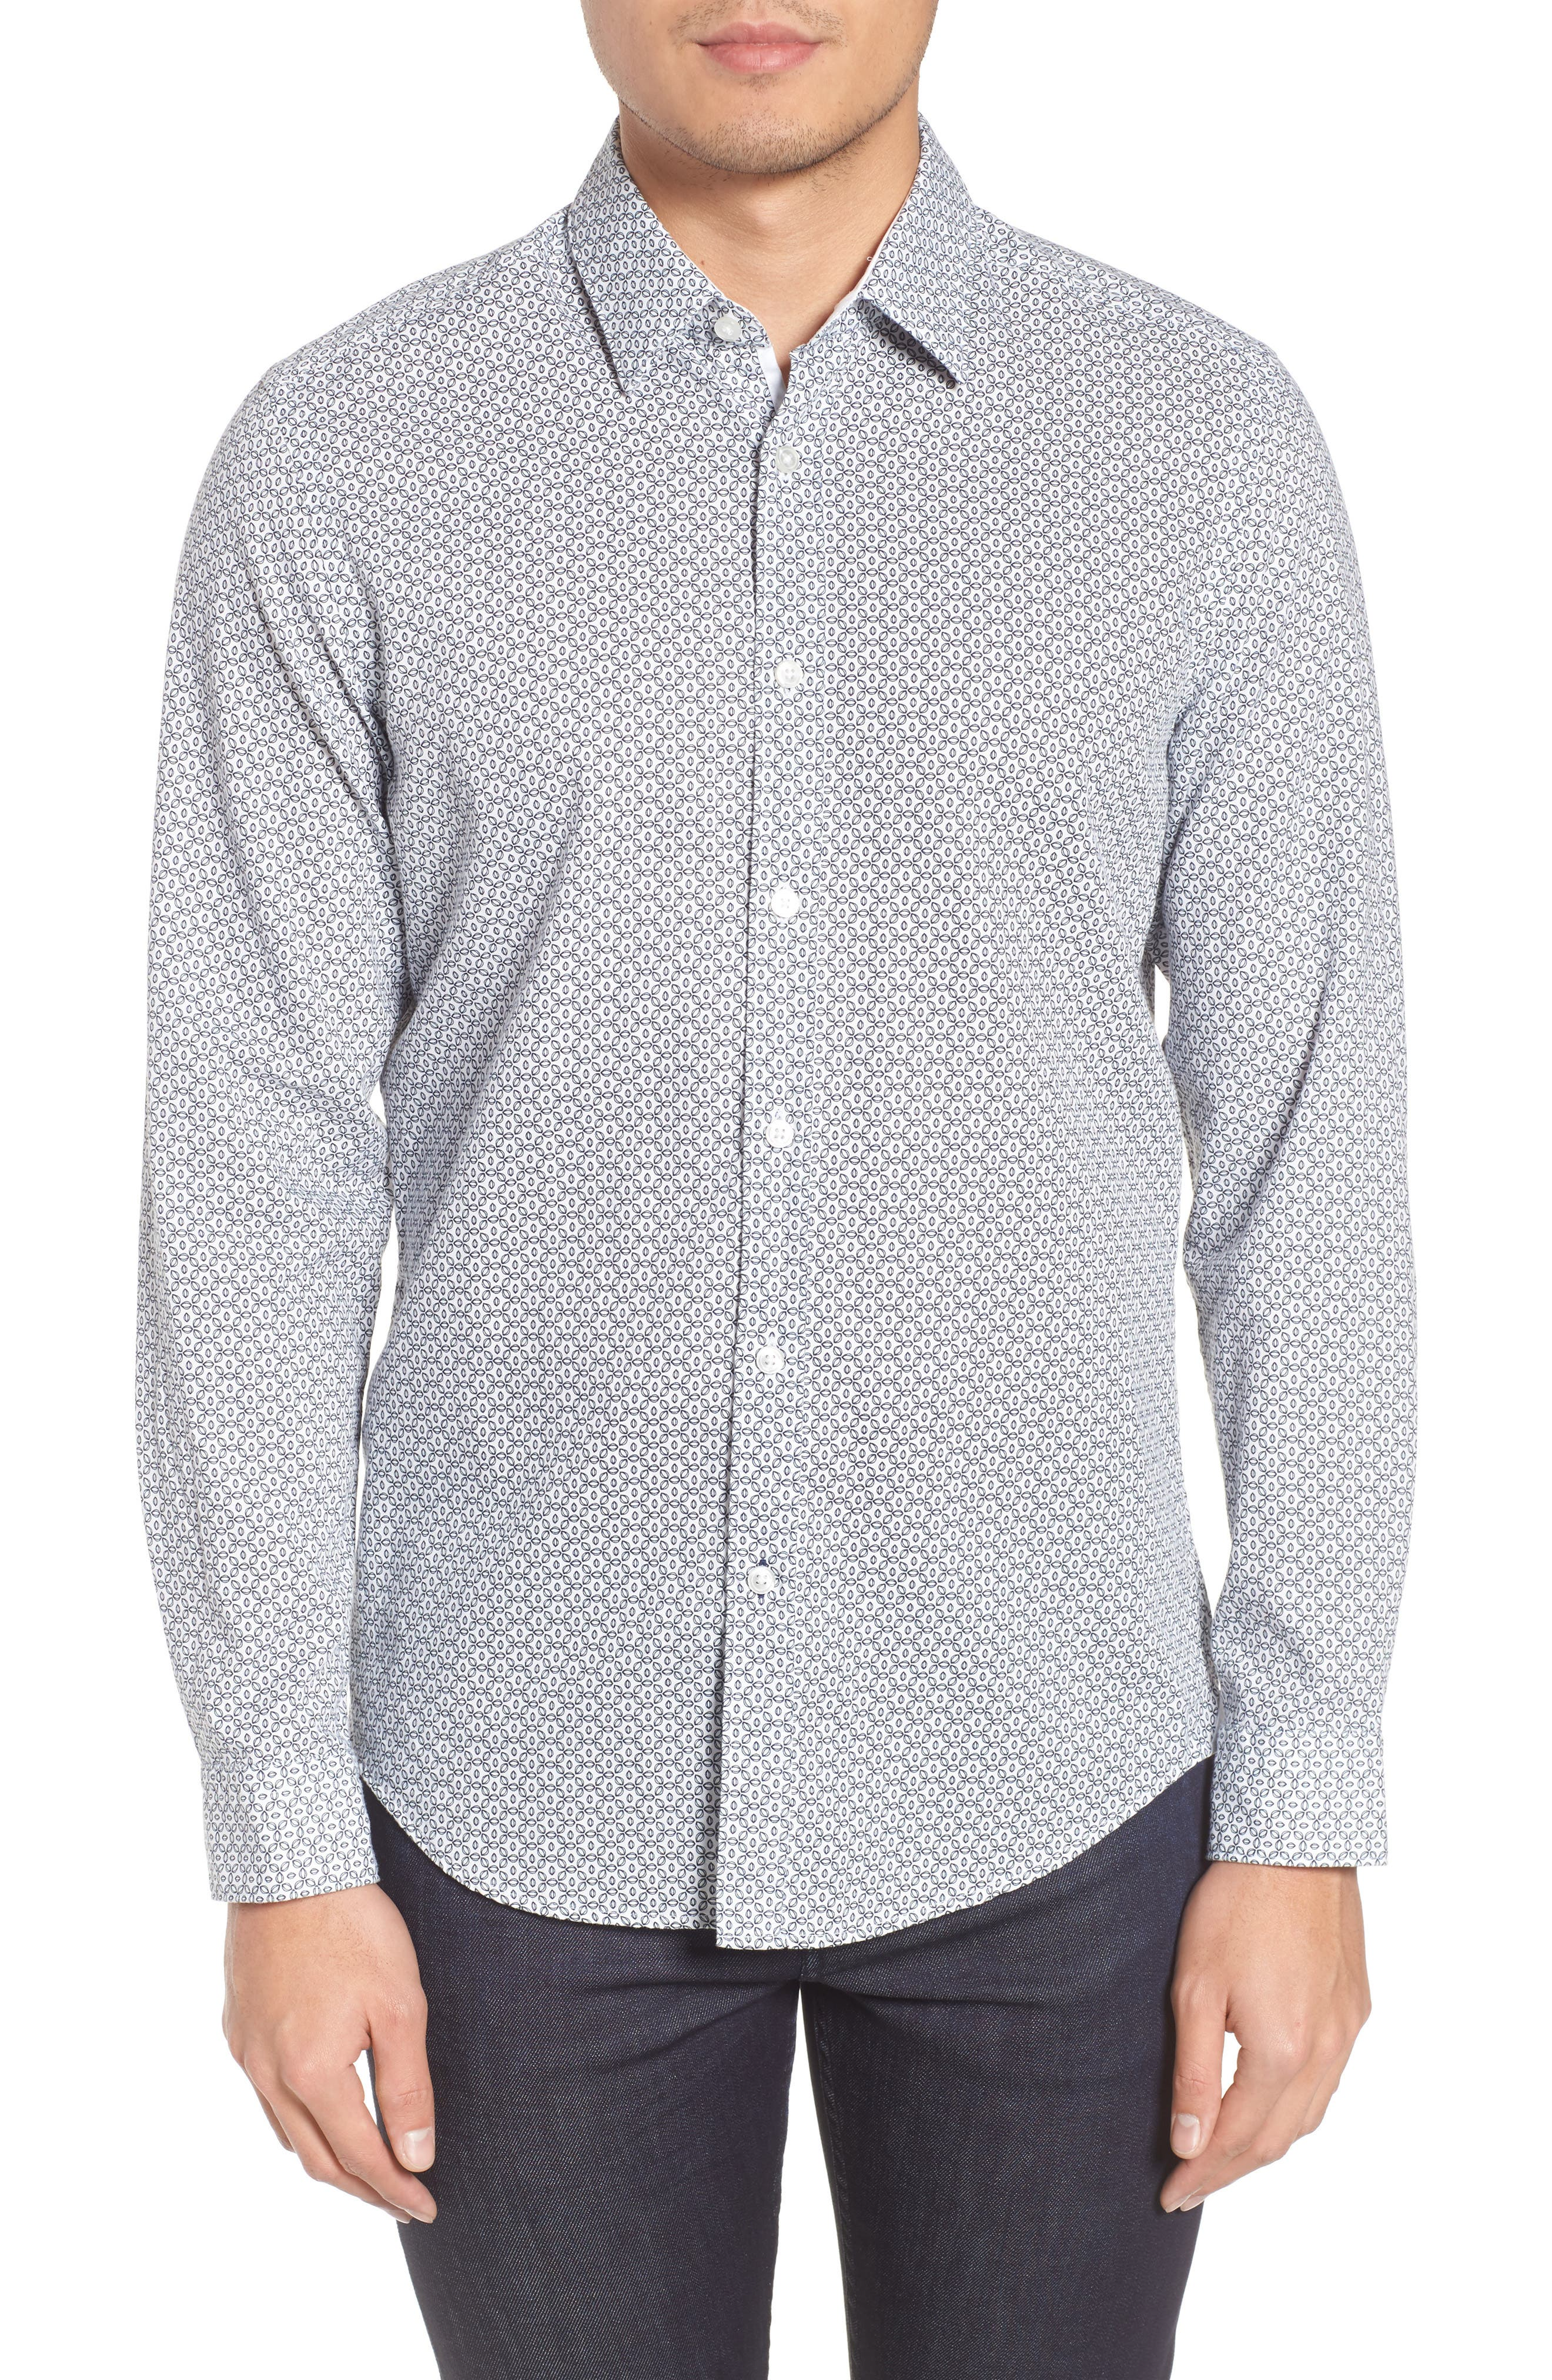 Lukas Regular Fit Twill Print Sport Shirt,                         Main,                         color, White